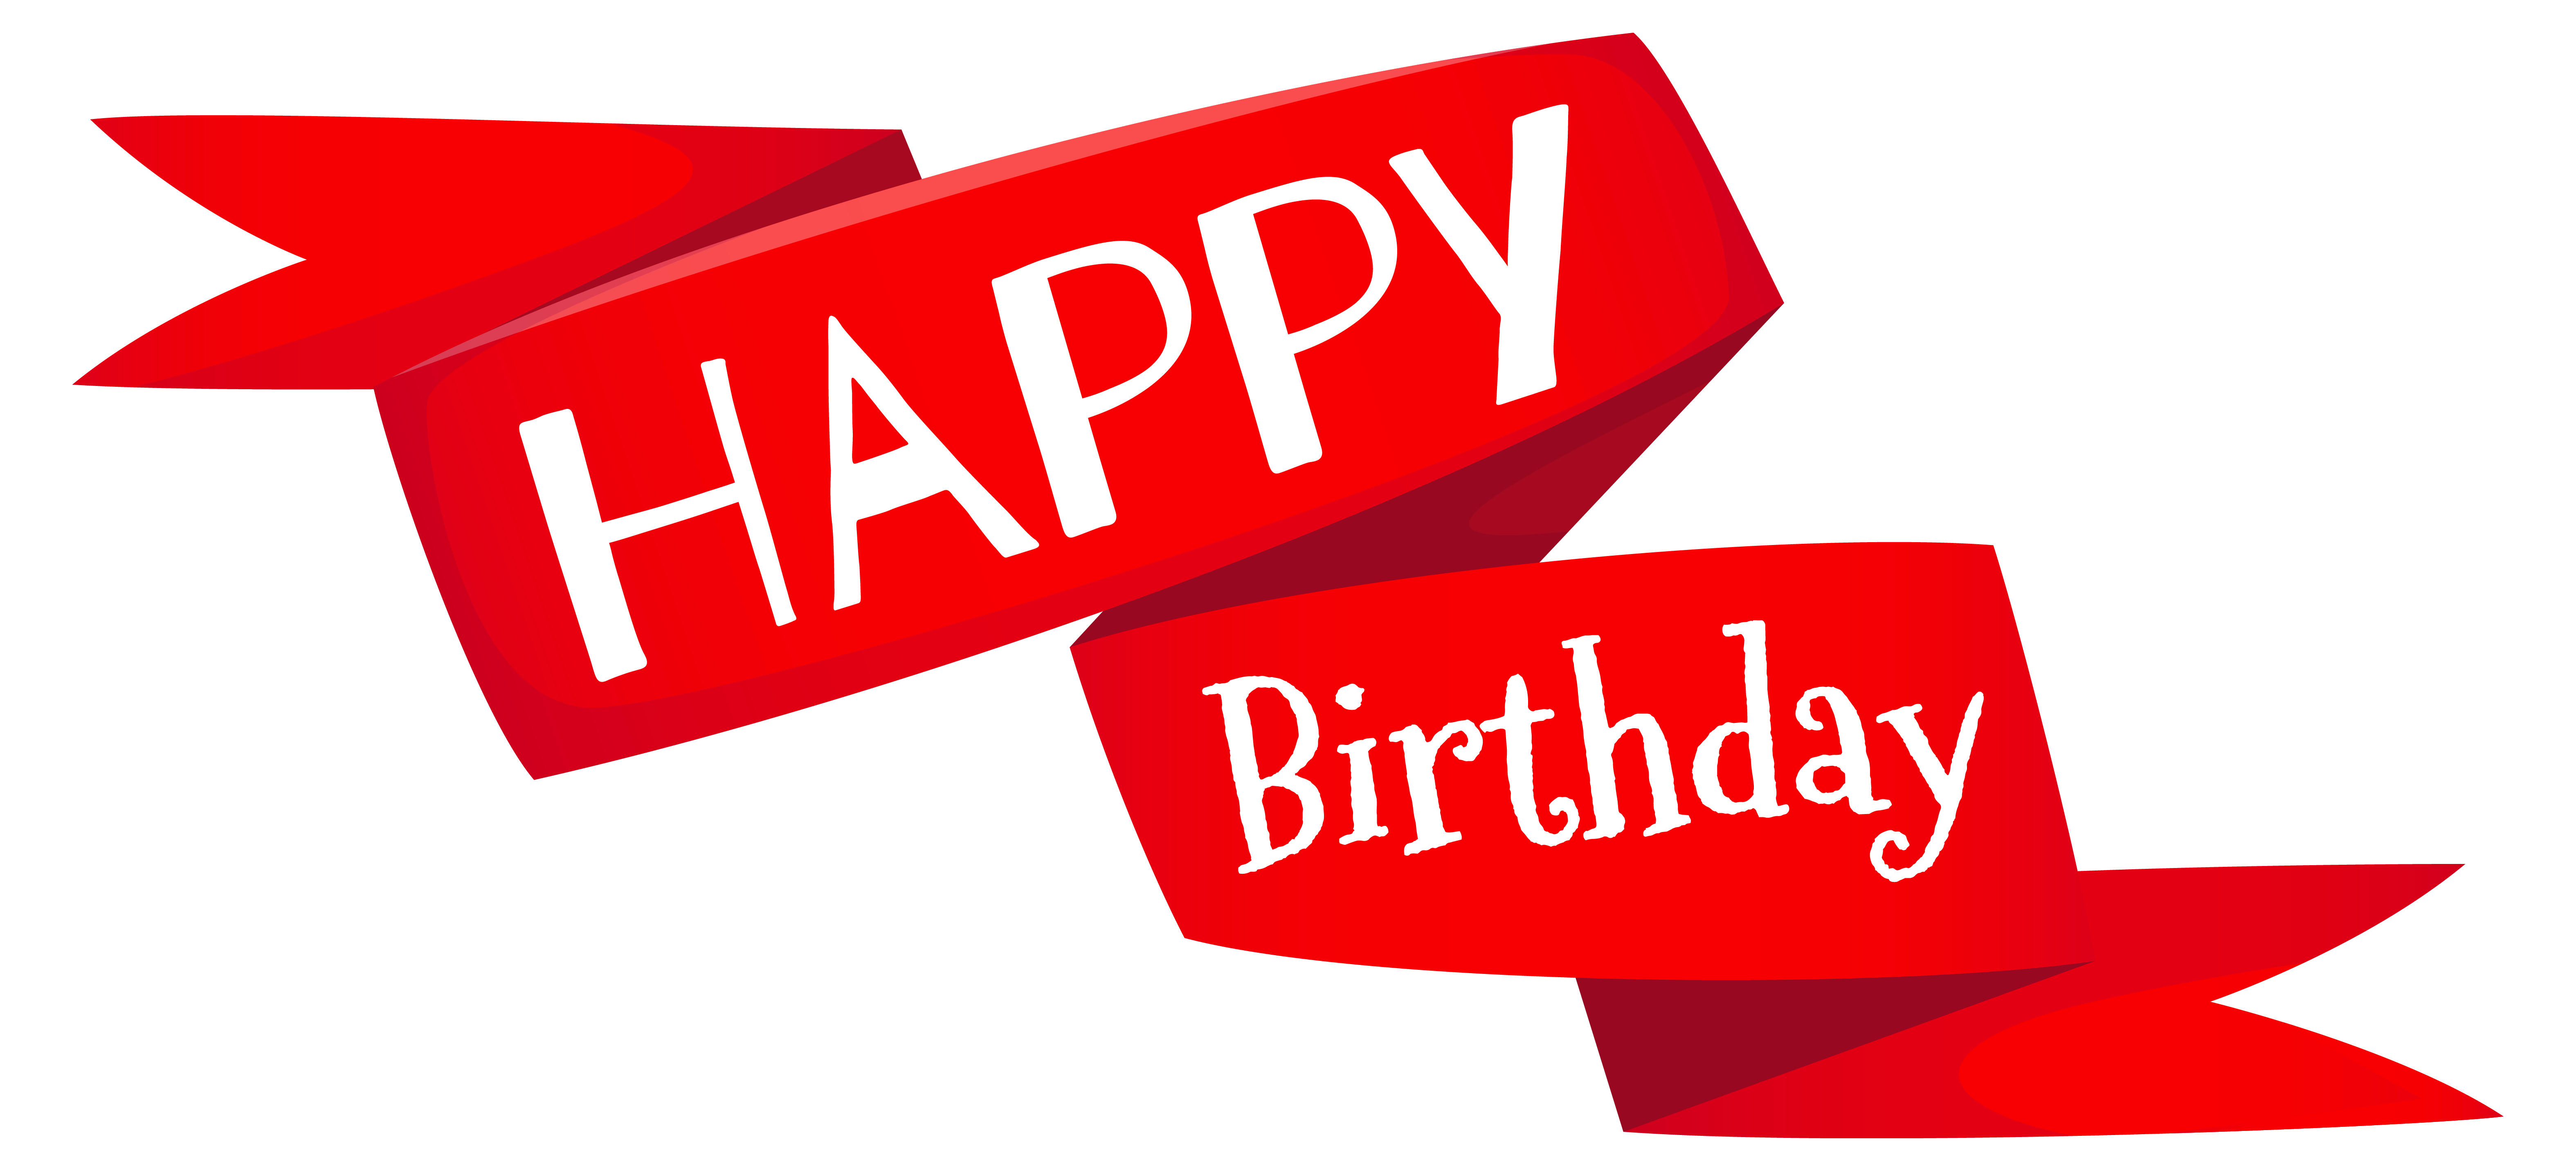 clipart library library Happy birthday banner clipart. Red png image gallery